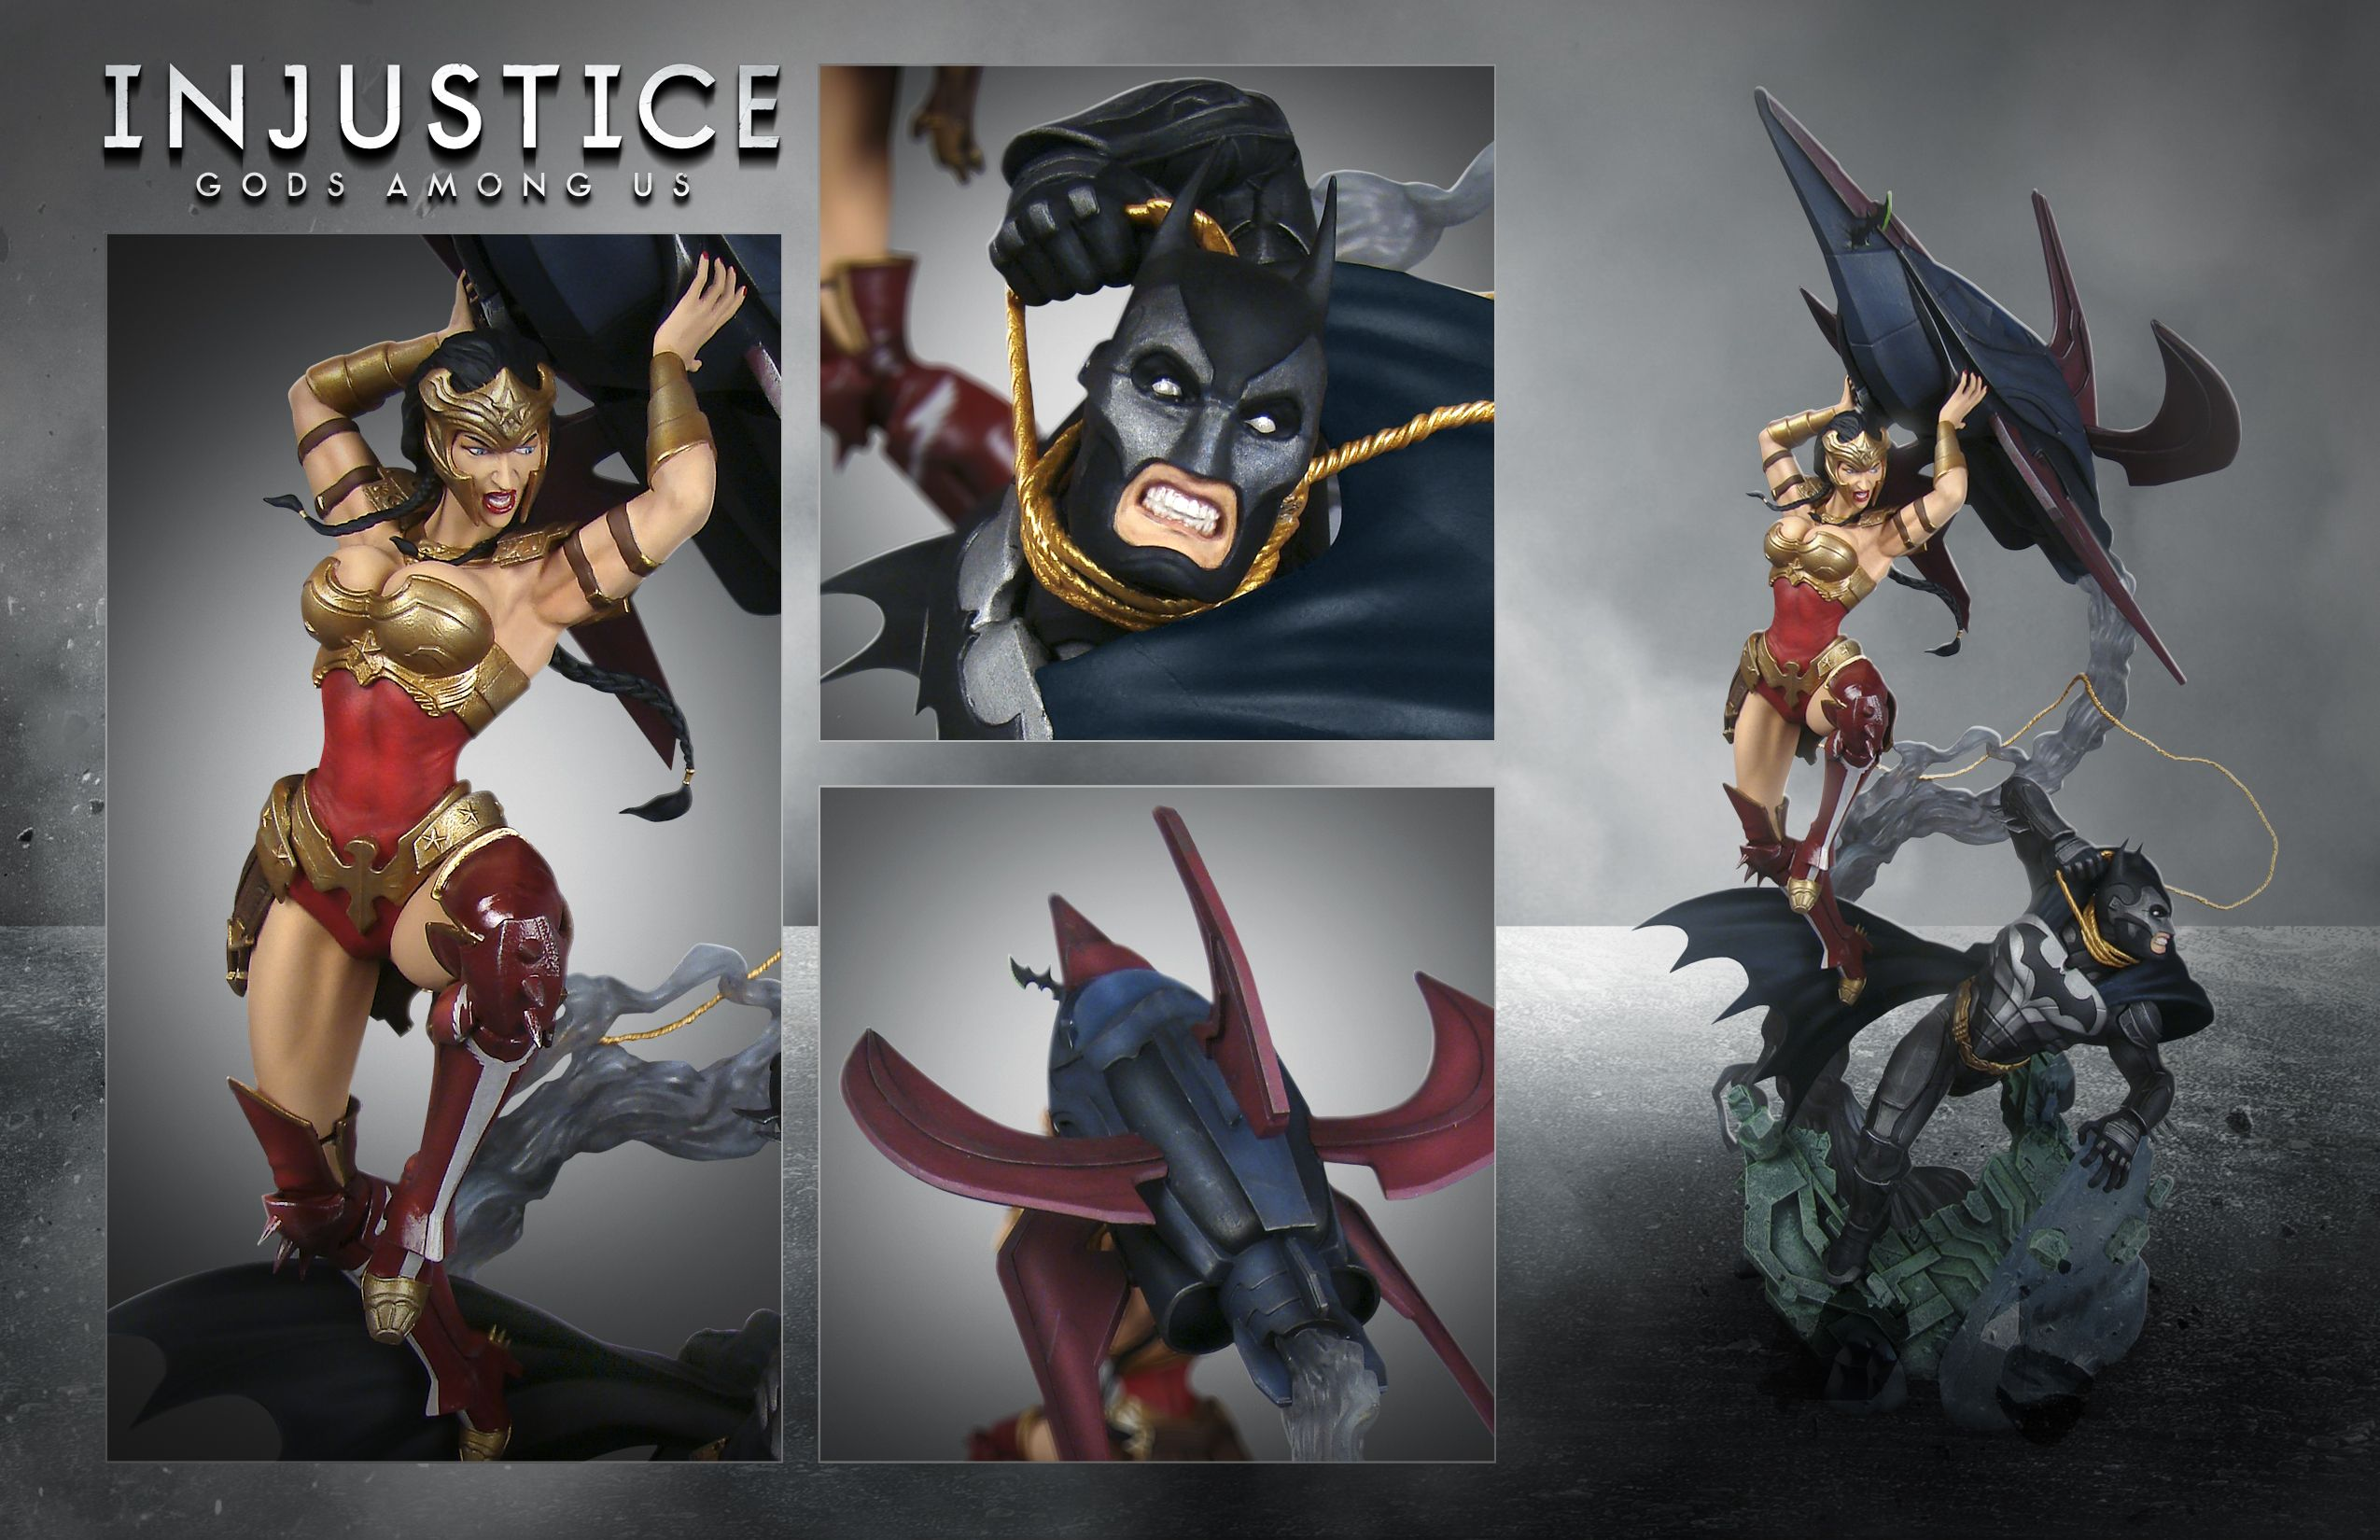 Injustice: Gods Among Us Collector's Edition Statue